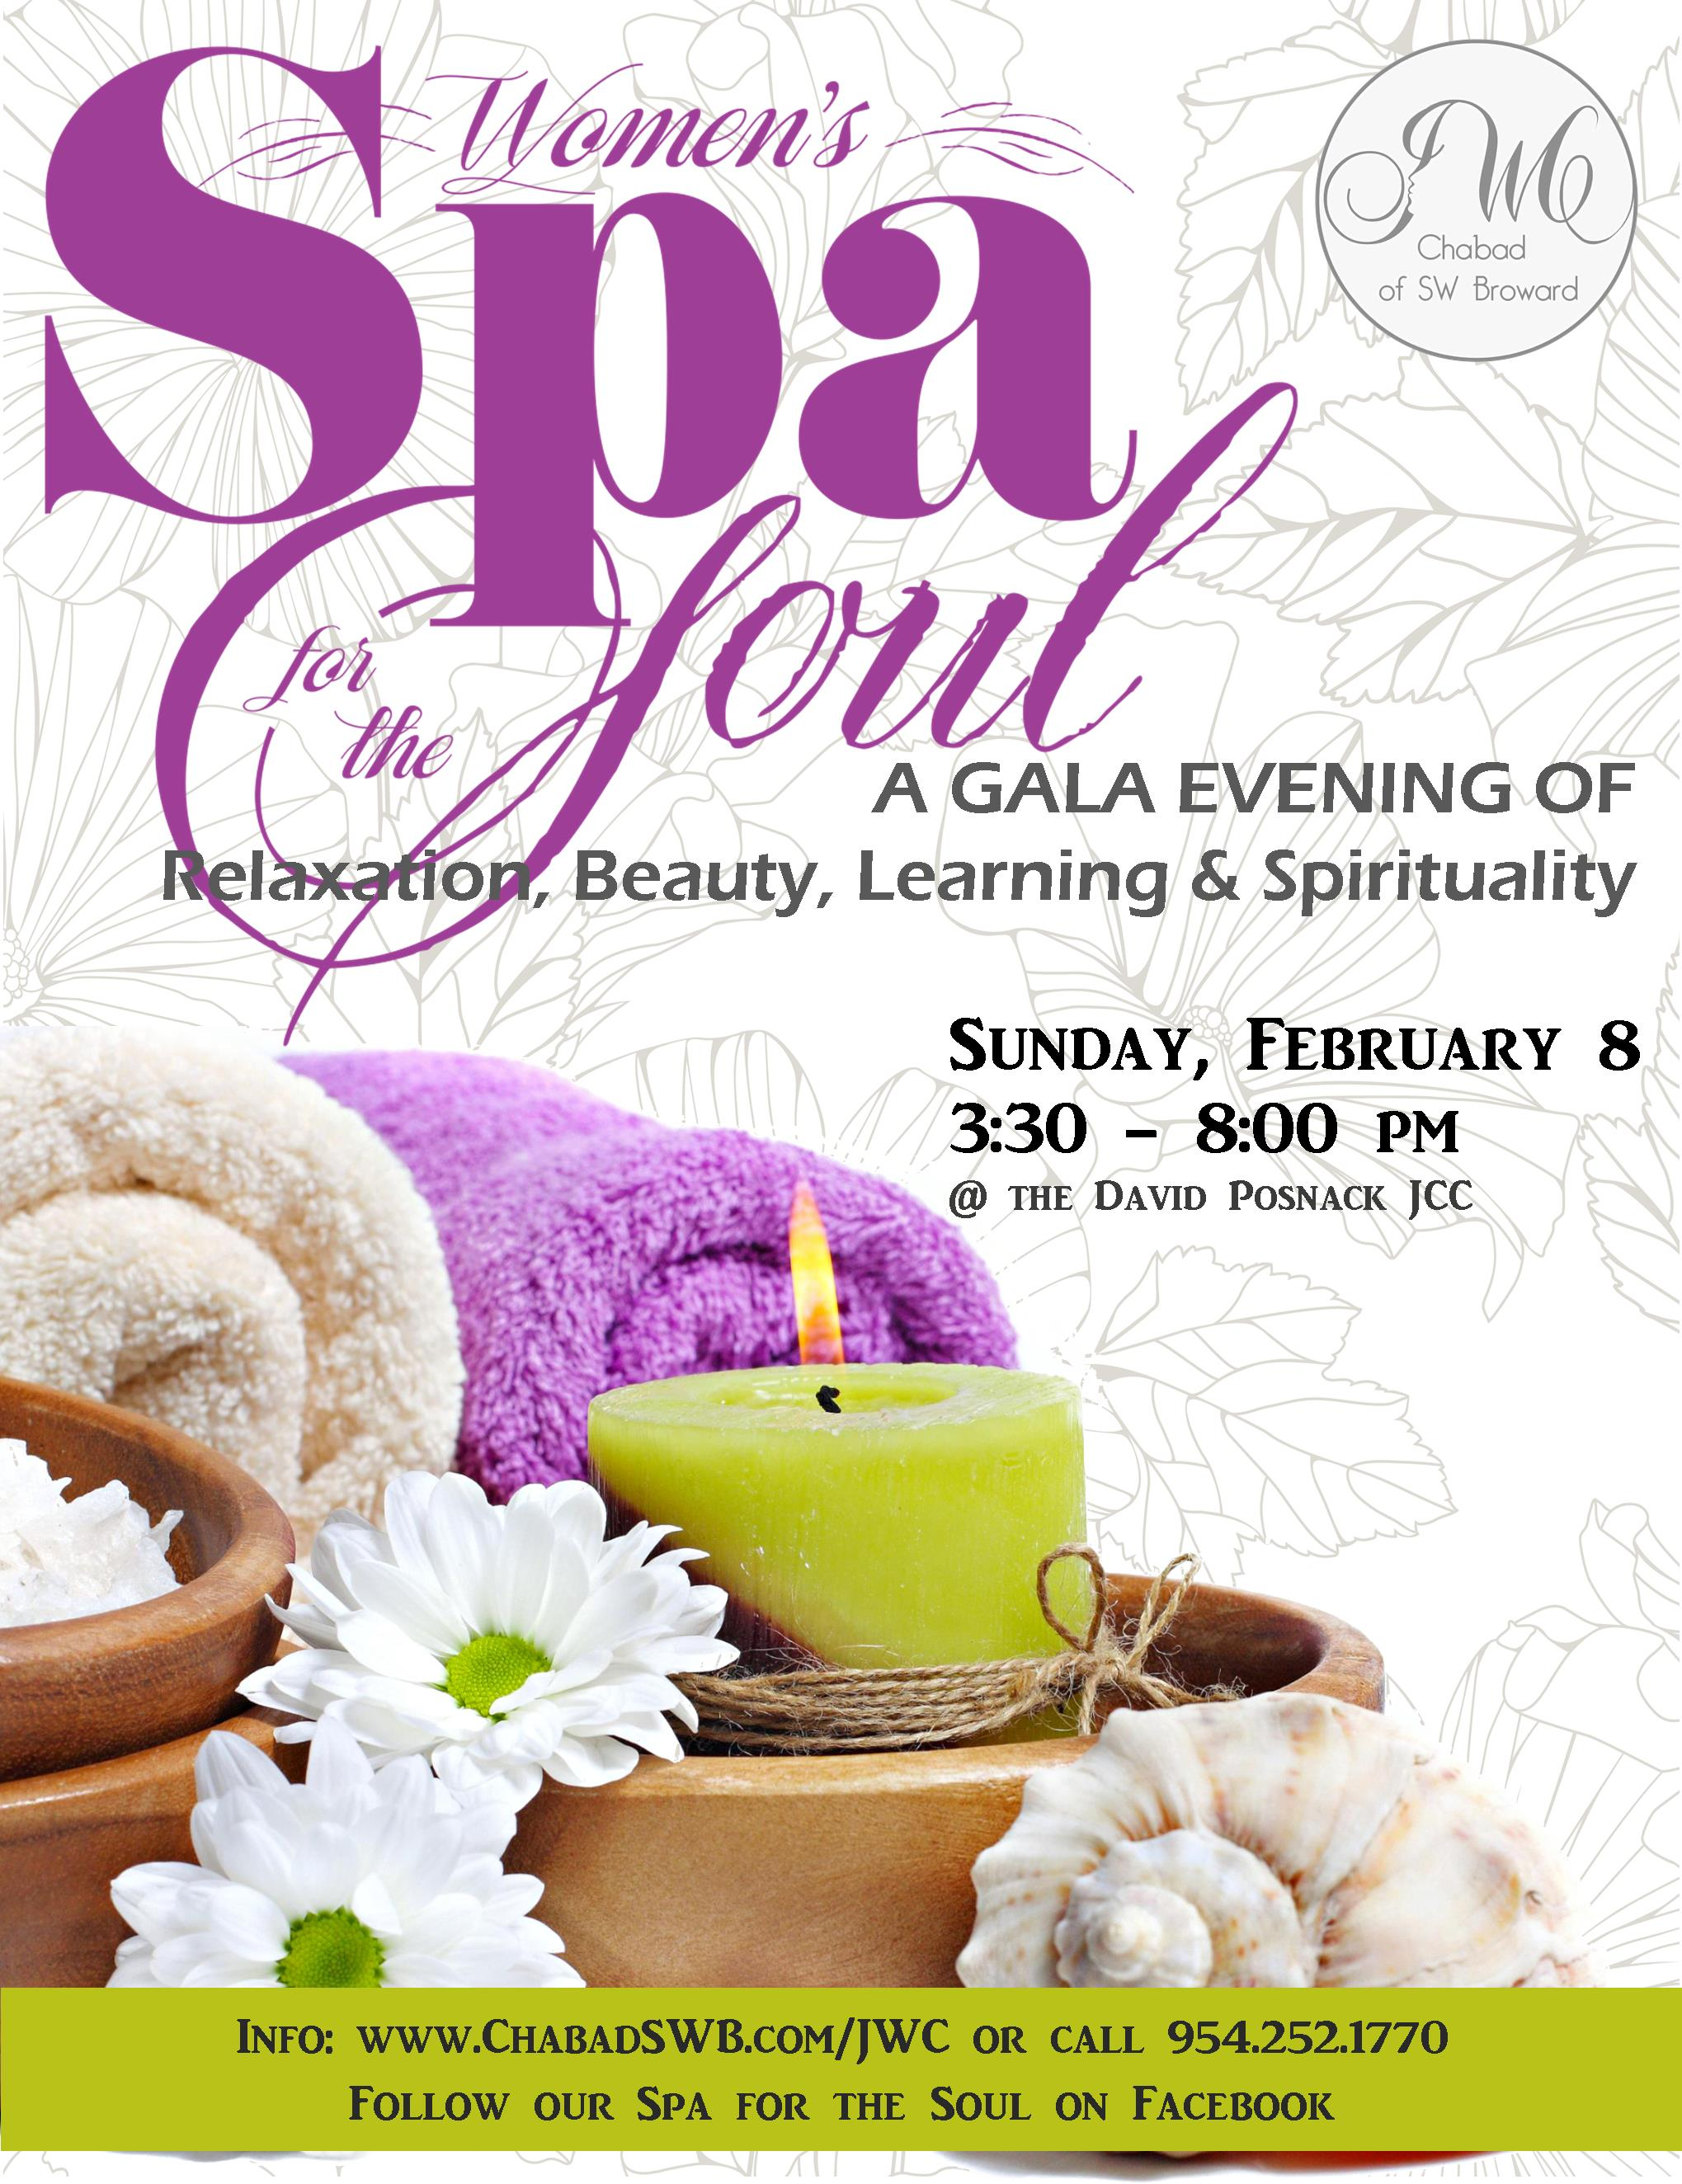 spa for the soul website front.jpg